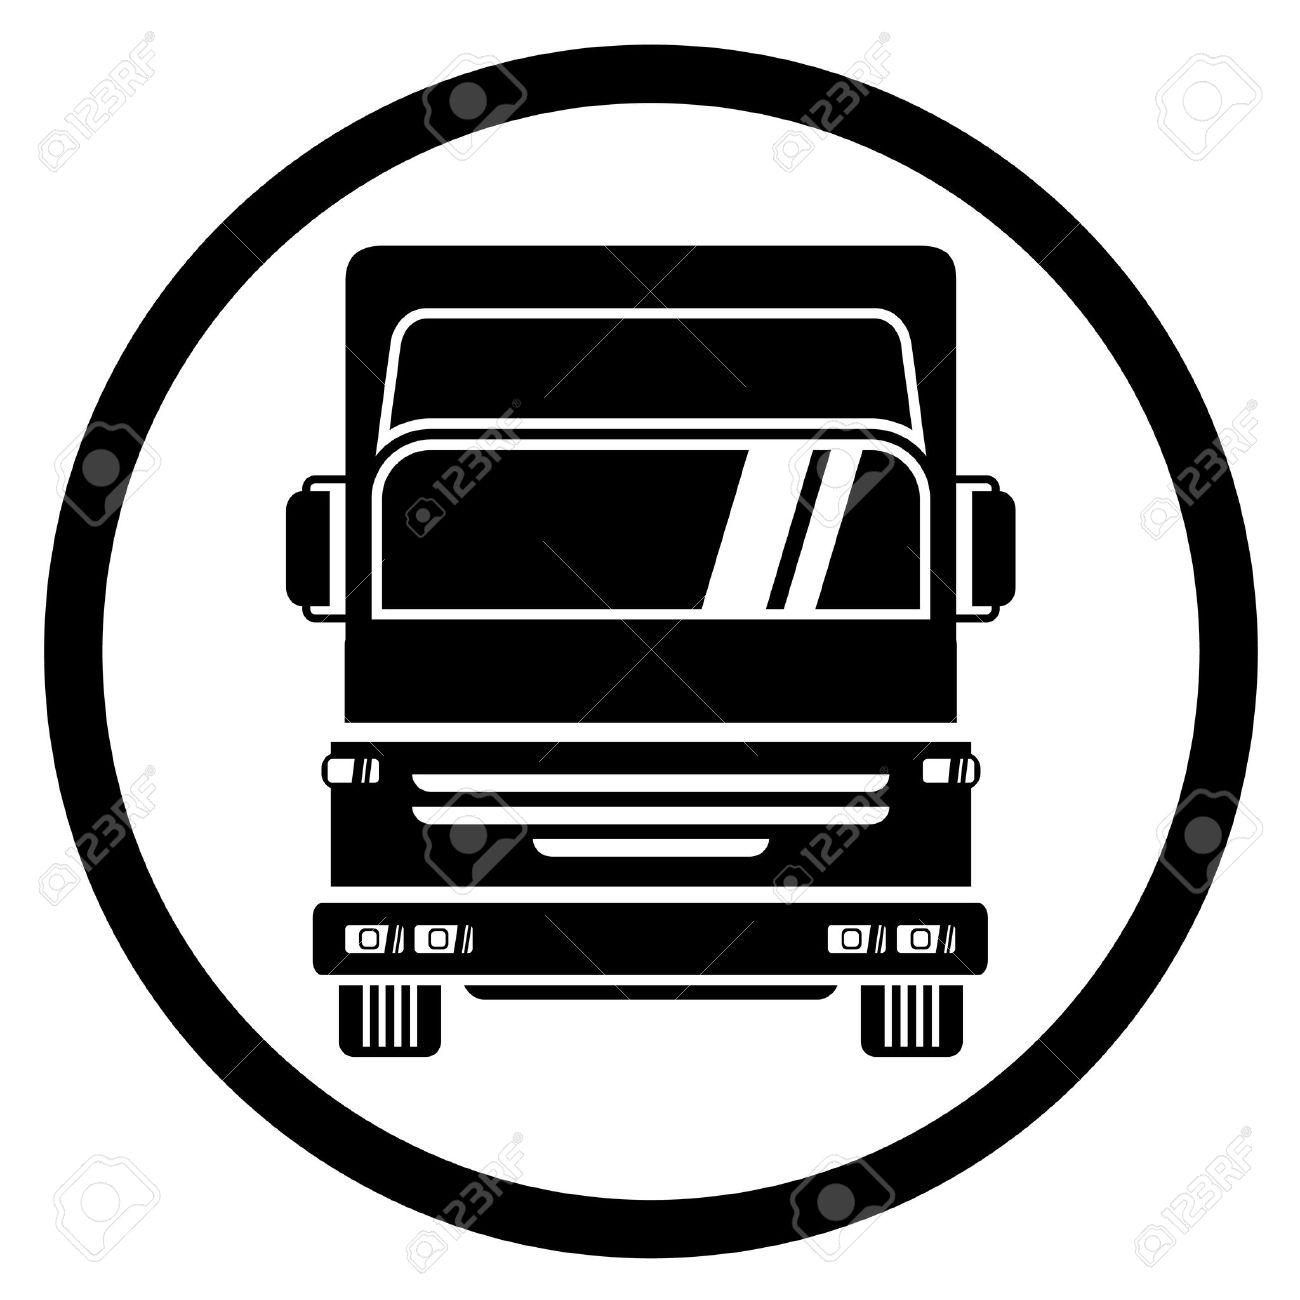 truck icon royalty free cliparts vectors and stock illustration